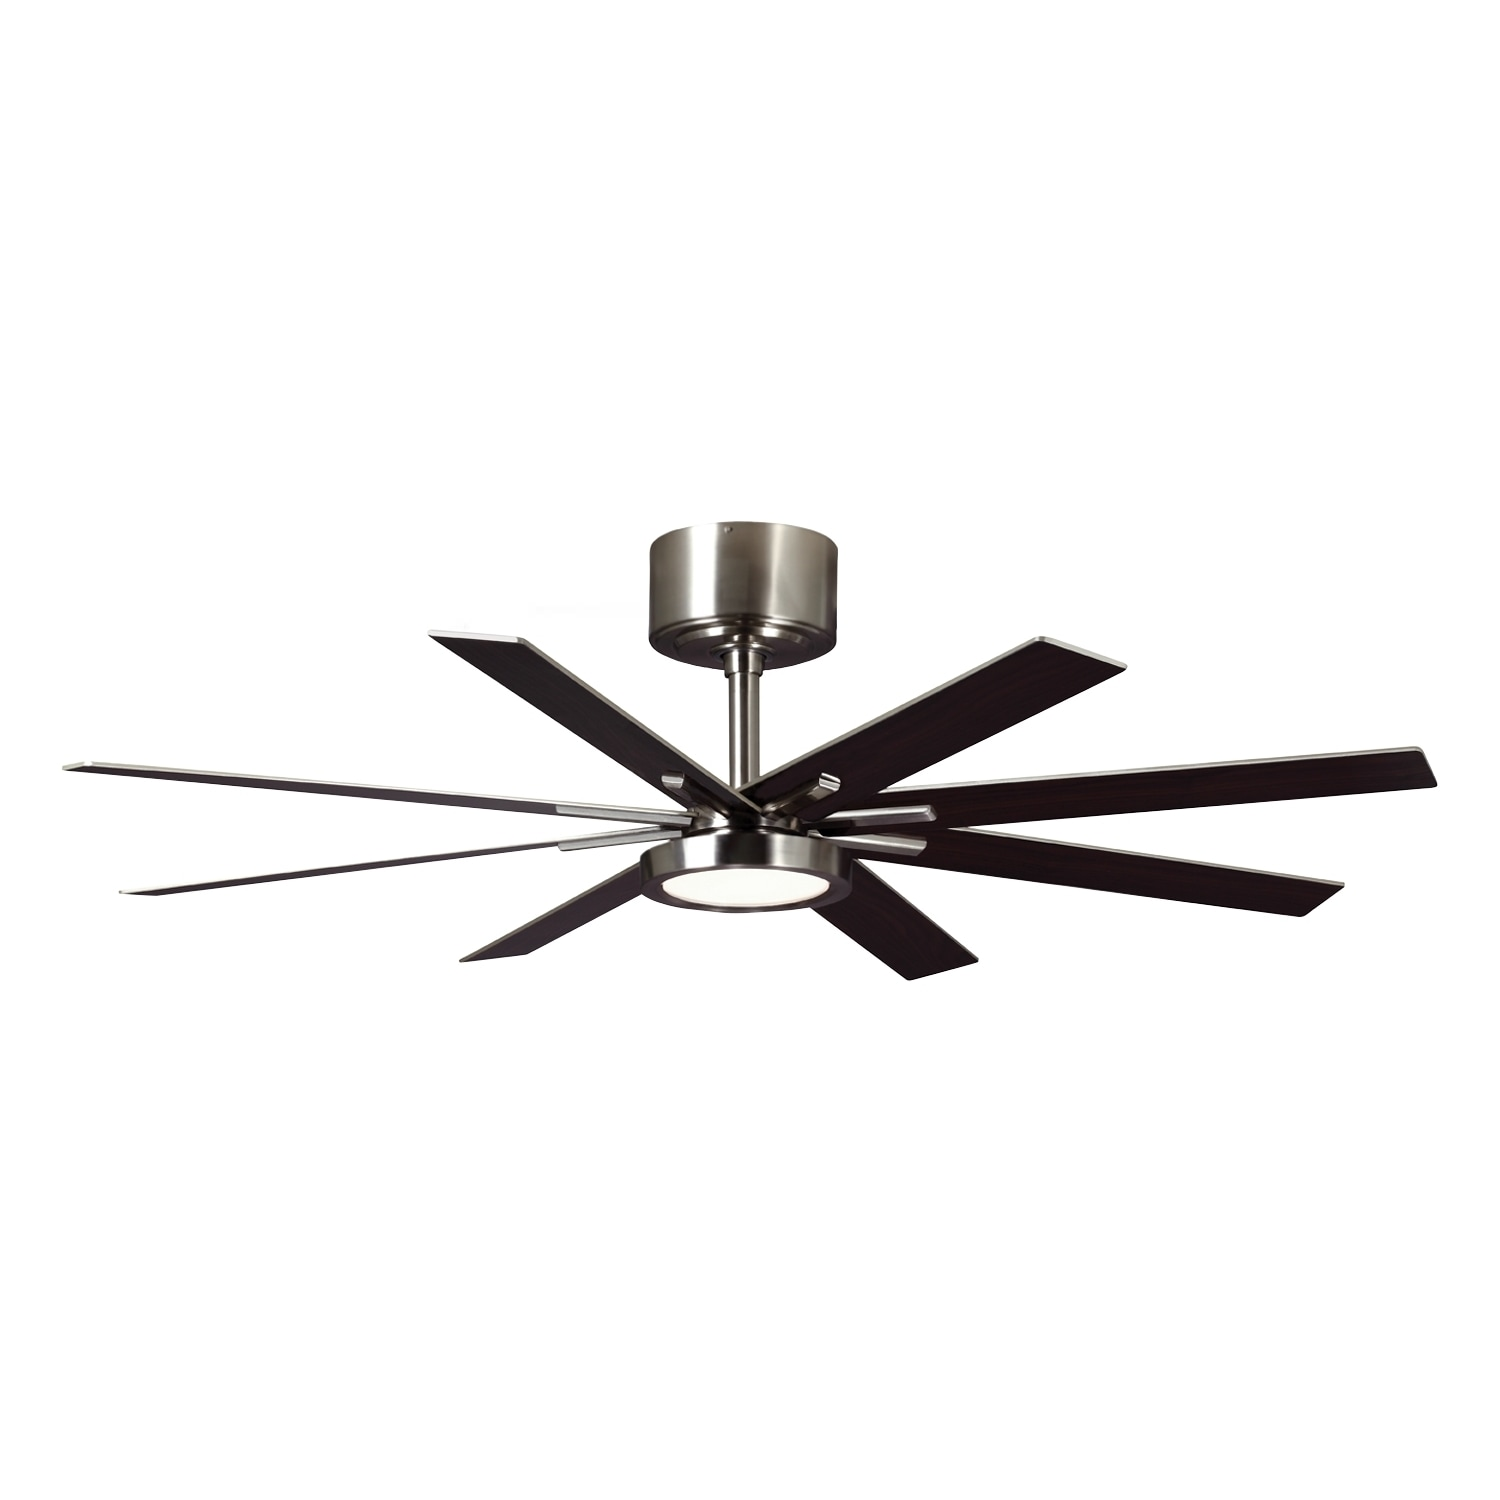 Monte Carlo Monte Carlo Empire Eight blade 60 inch Ceiling Fan